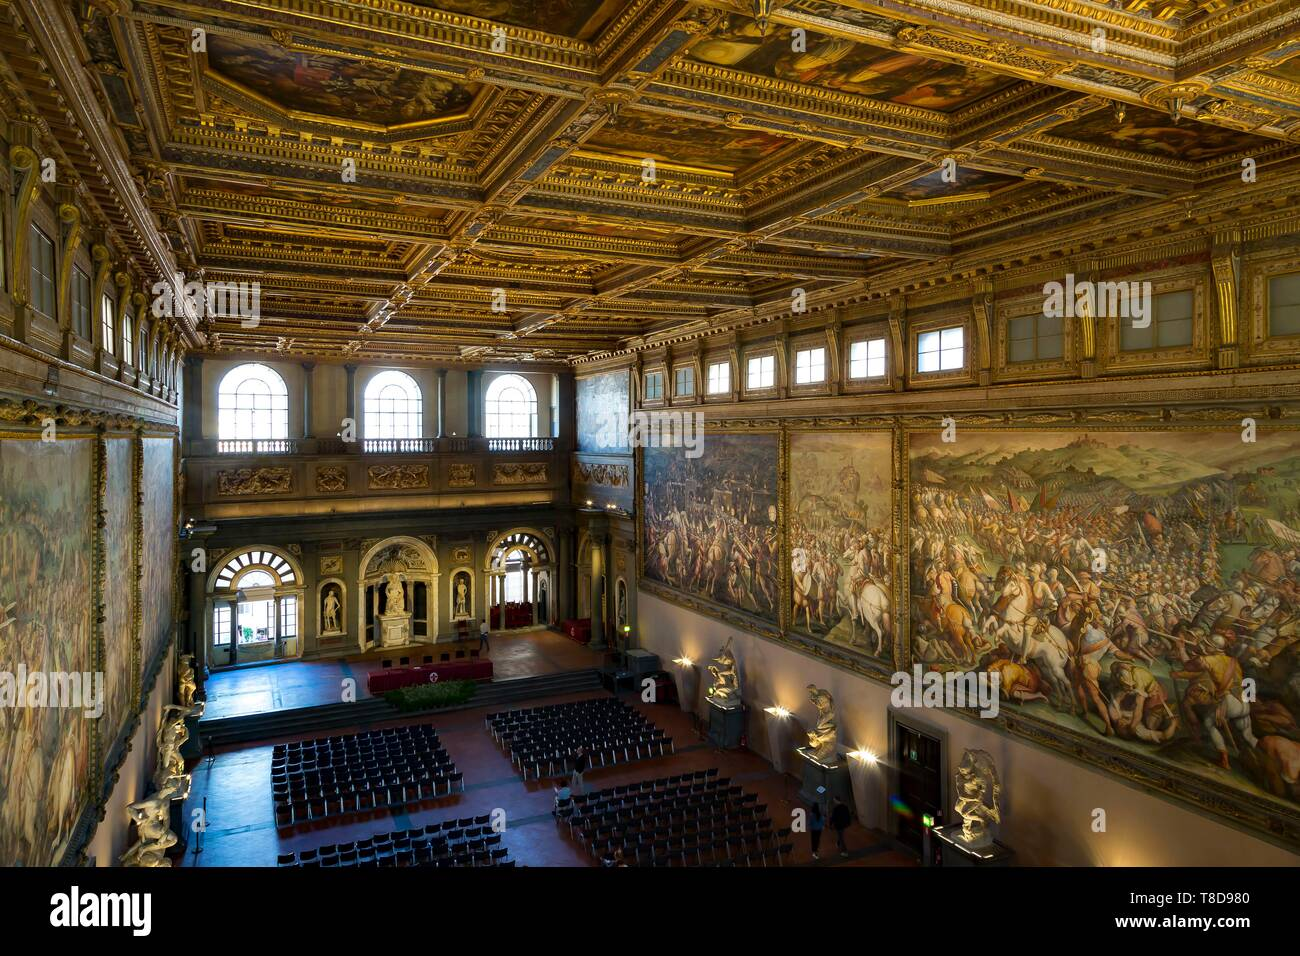 Italy, Tuscany, Florence, historic centre listed as World Heritage by UNESCO, piazza della Signoria, Palazzo Vecchio, Five Hundred Room, Salone dei Cinquecento - Stock Image